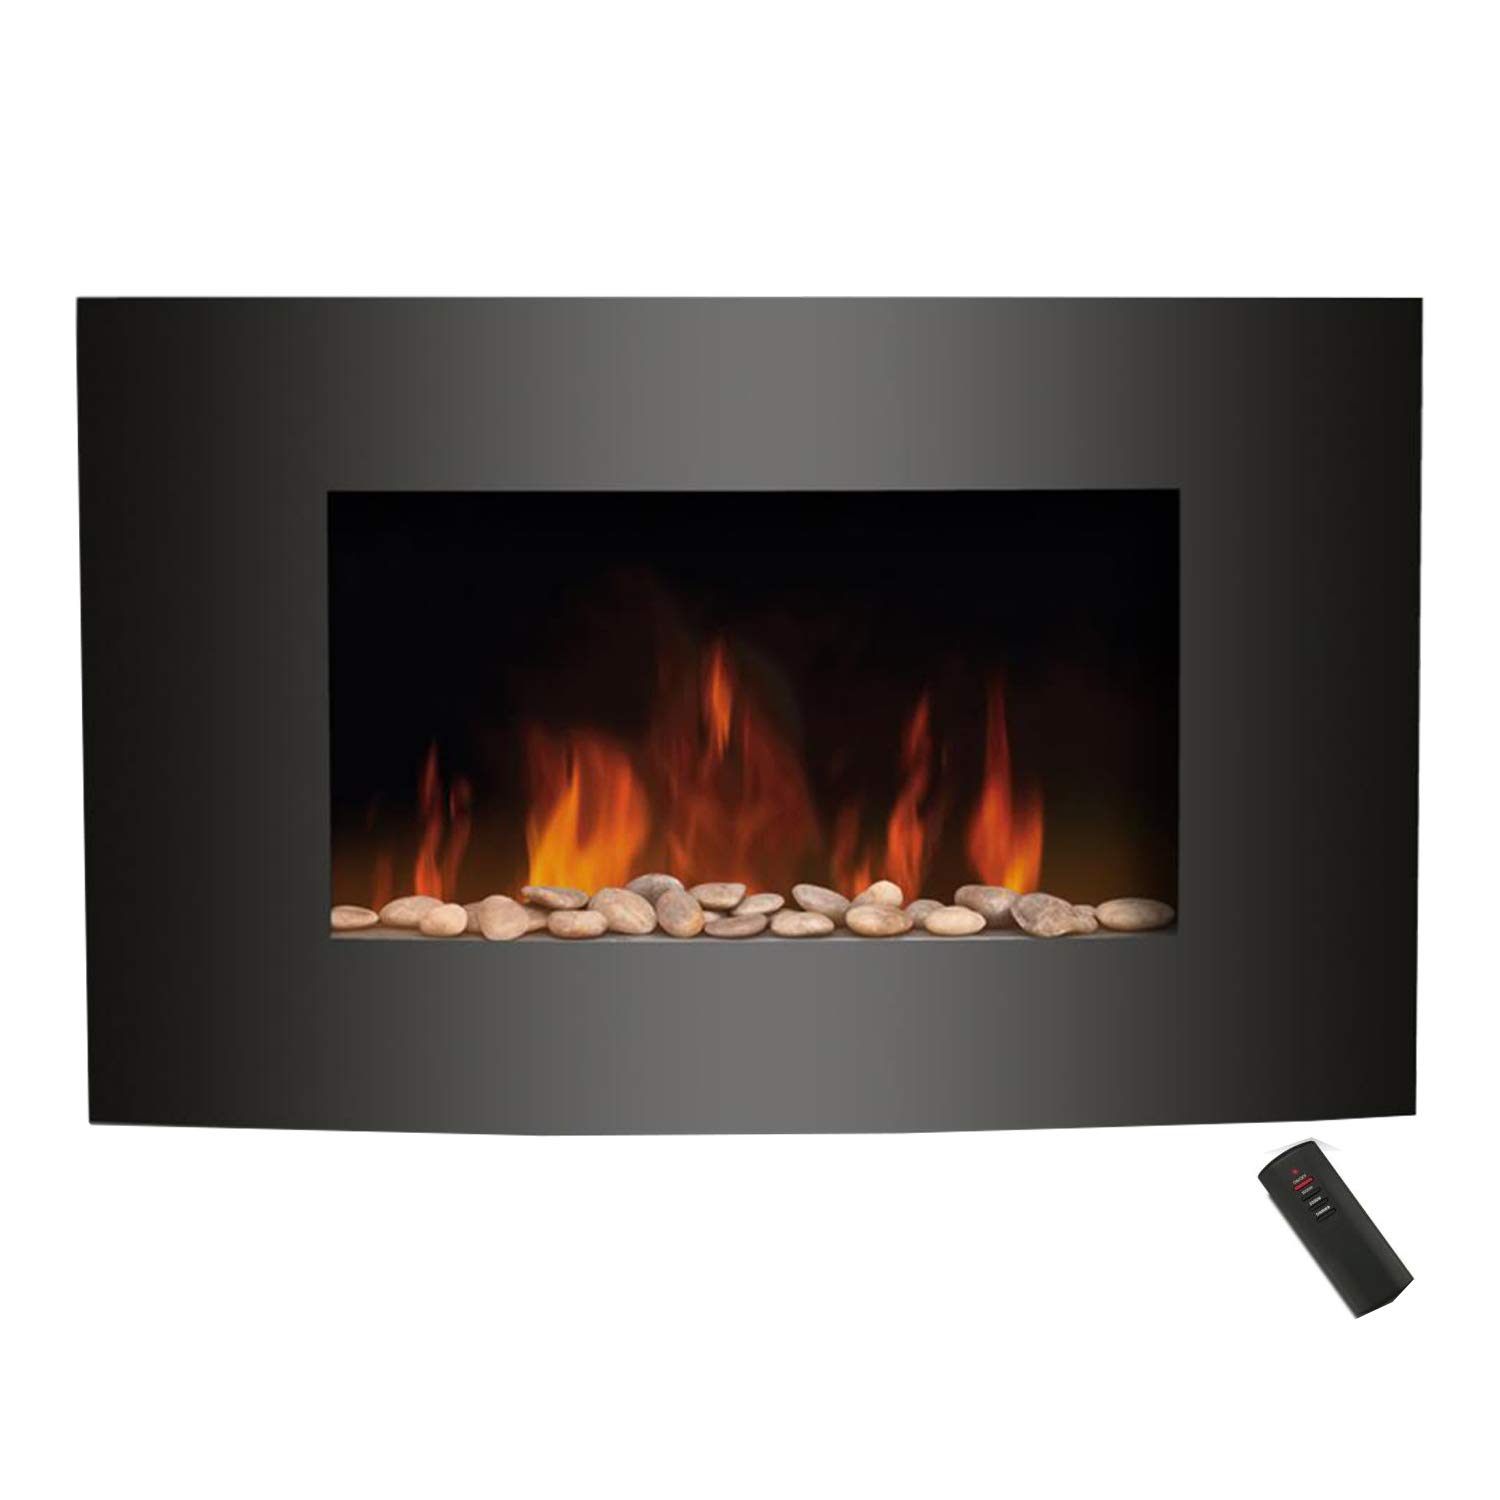 GLOWMASTER Electric Fire Fireplace Curved Black Glass Wall Mounted Flame Living Room Heater GUARANTEED4LESS AGP1204-KNIGHTSBRIDGE